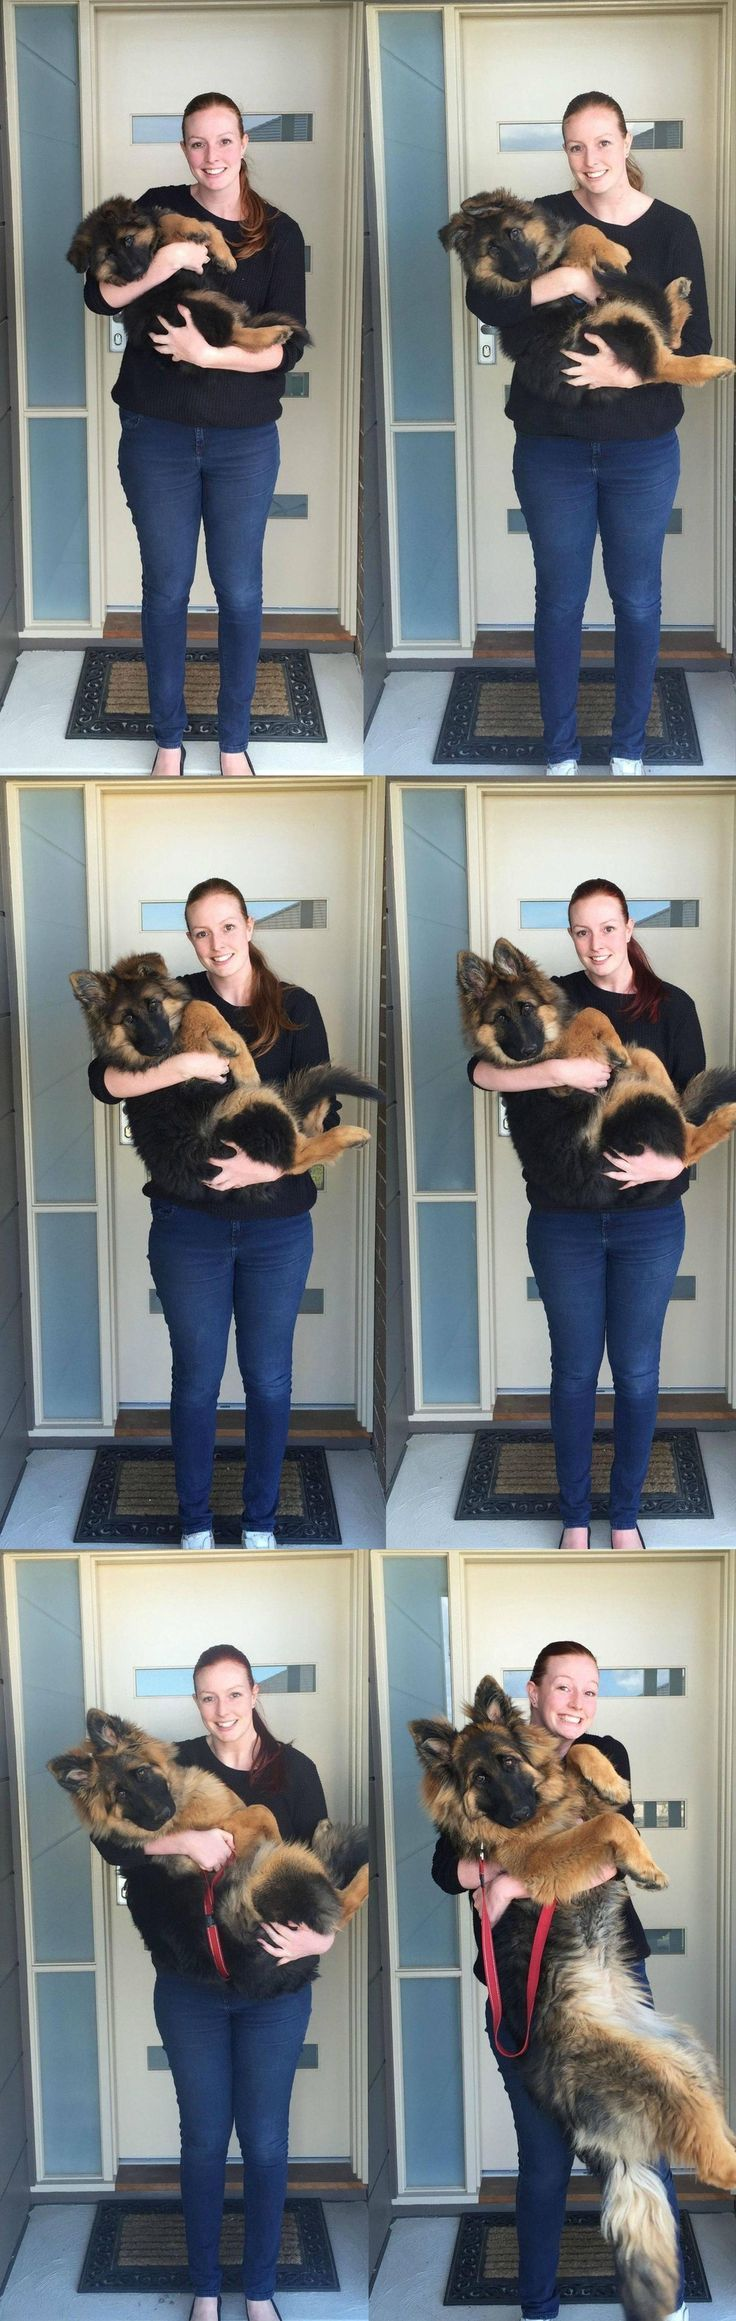 Look at this incredible series of photos from proud pet owner Ashley Lewis, showing what time and love does to a dog. In only 6 months, her lil' 8-week-old German shepherd blossomed from a wee puppy who could easily fit her arms to a hulking big puppy who probably has trouble fitting on the couch. - Tap the pin for the most adorable pawtastic fur baby apparel! You'll love the dog clothes and cat clothes! <3